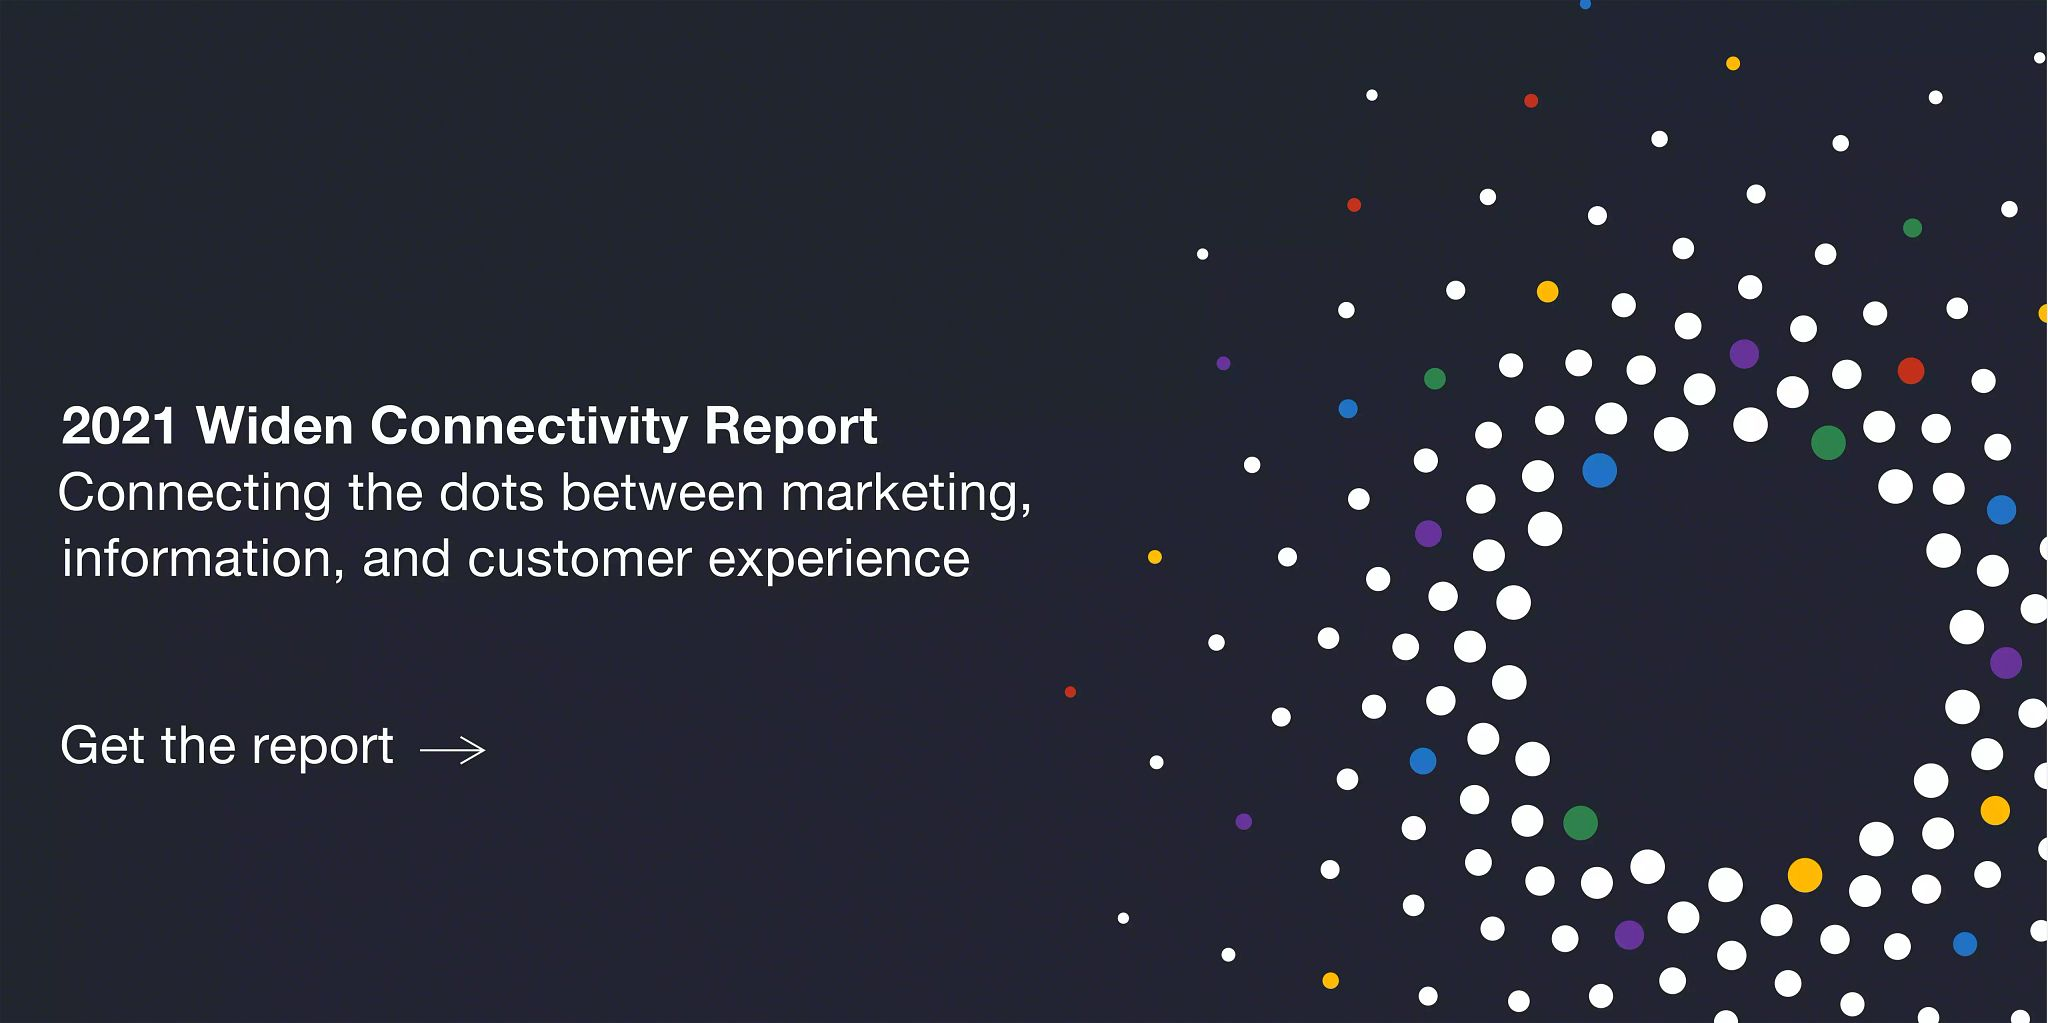 """Graphic with a black background and a starburst of dots on the right. Then the words """"2021 Widen Connectivity Report: Connecting the dots between marketing, information, and customer experience"""" on the left. With a call to action to get the report under that."""